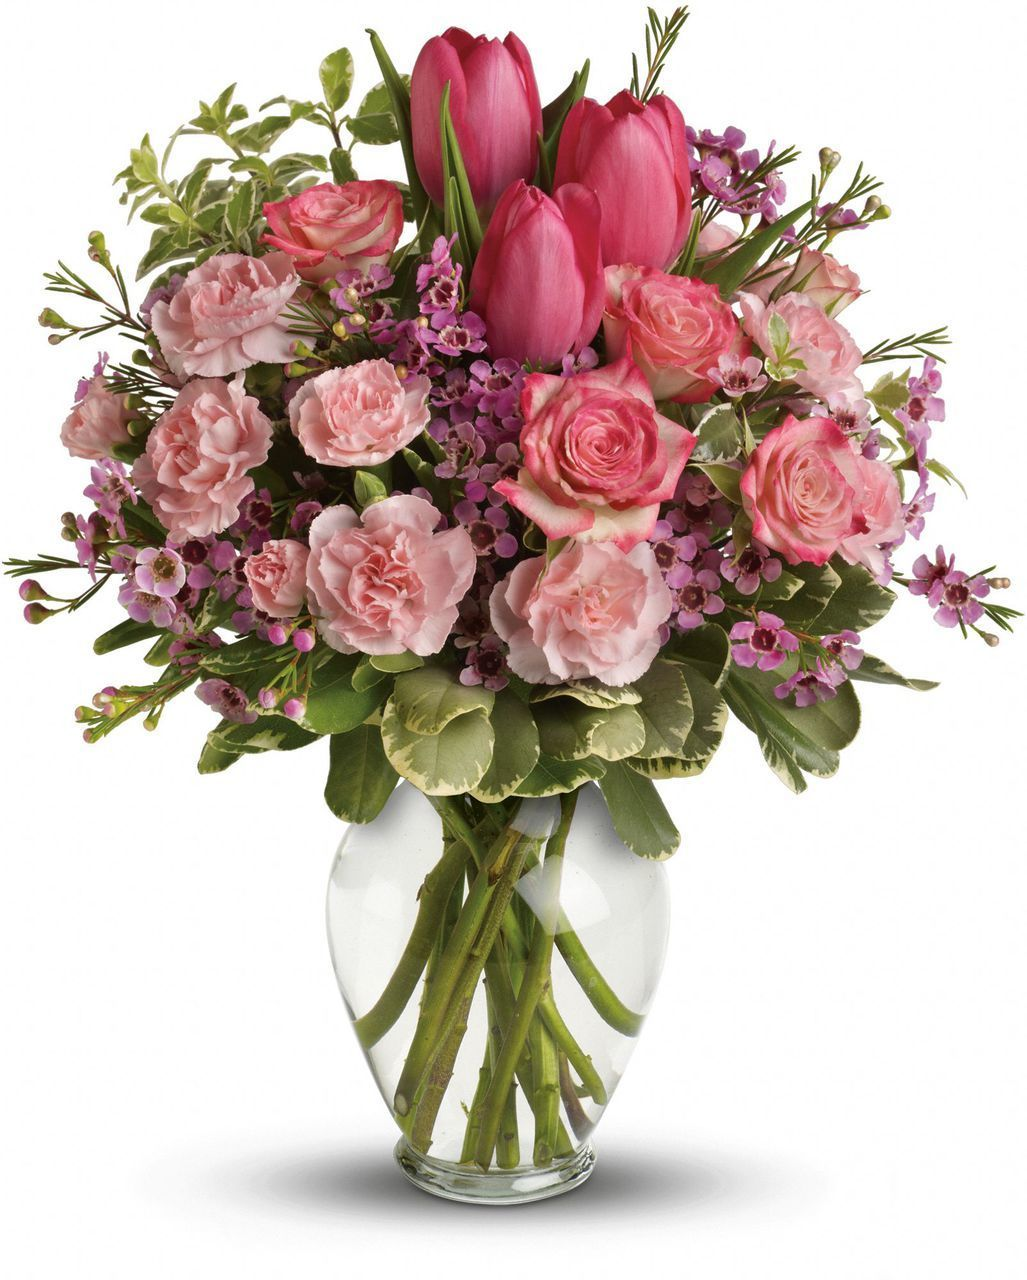 Full Of Love Bouquet From Pams Posies Flowers Pinterest